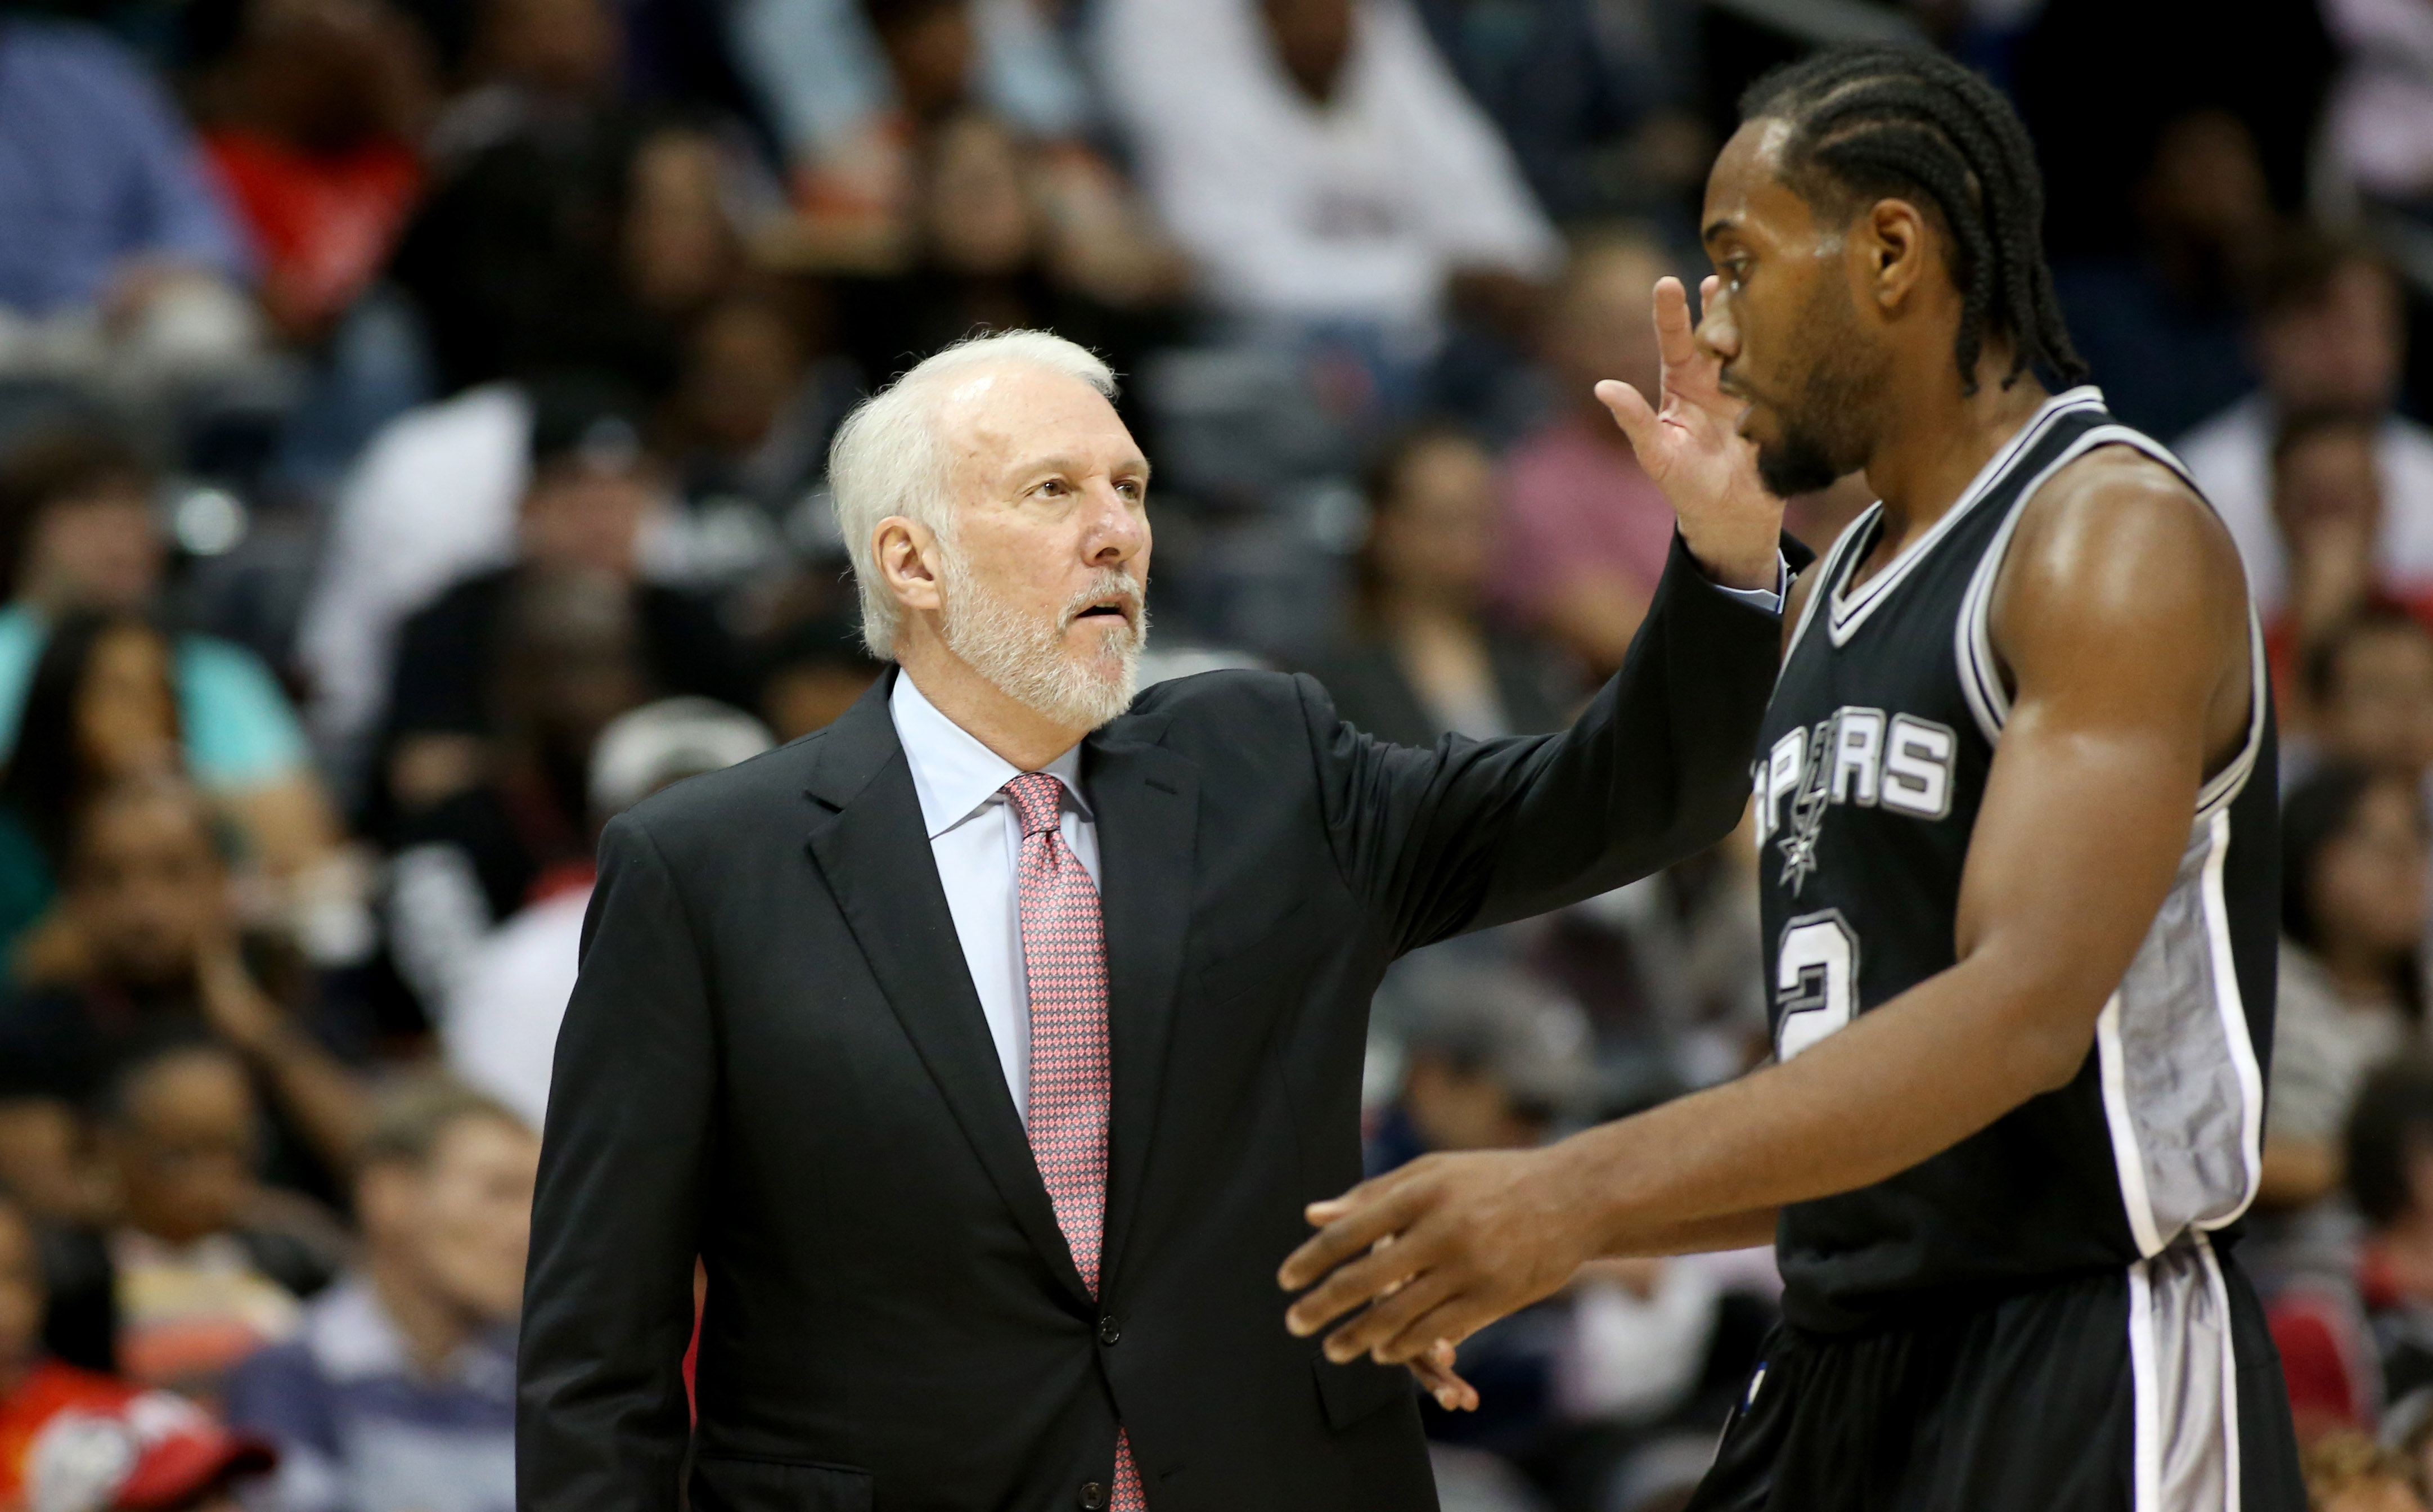 Oct 14, 2015; Atlanta, GA, USA; San Antonio Spurs head coach Gregg Popovich greets forward Kawhi Leonard (2) as he walk to the bench in the third quarter of their game against the Atlanta Hawks at Philips Arena. The Hawks won 100-86. Mandatory Credit: Jason Getz-USA TODAY Sports